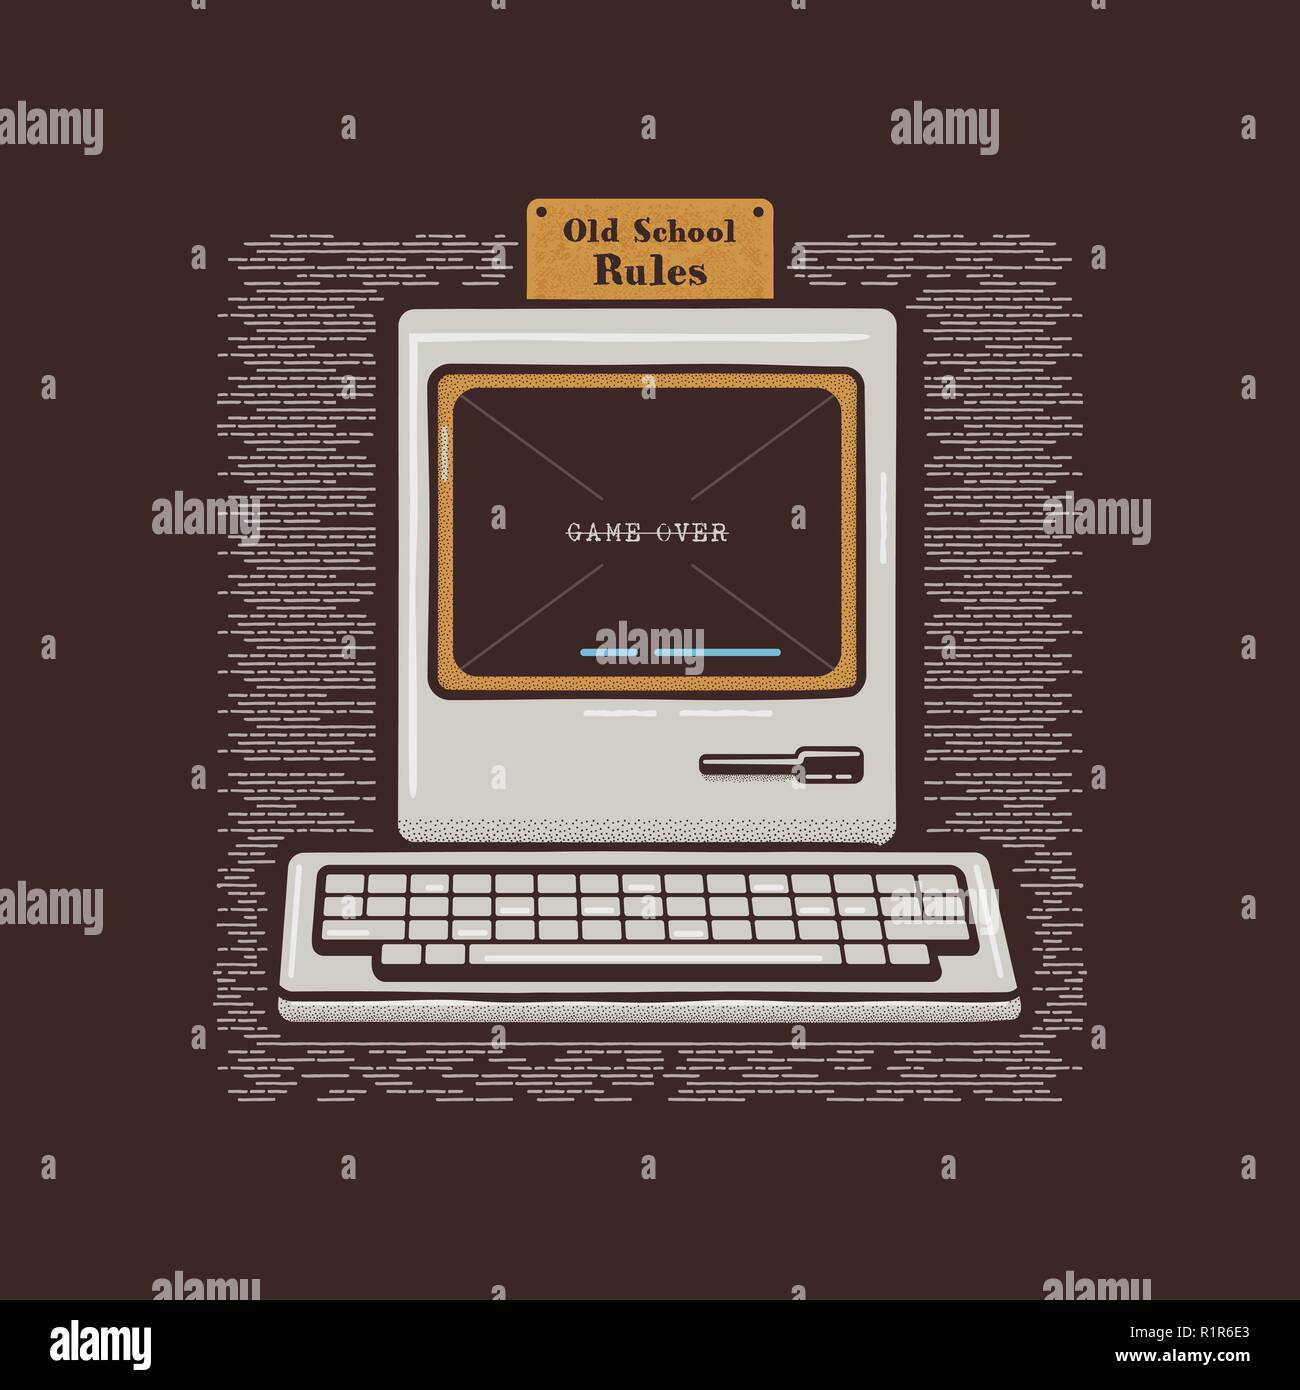 Old Personal Computer. Retro PC icon emblem with Old School Rules quote. Stock vector flat illustration isolated on dark background - Stock Image